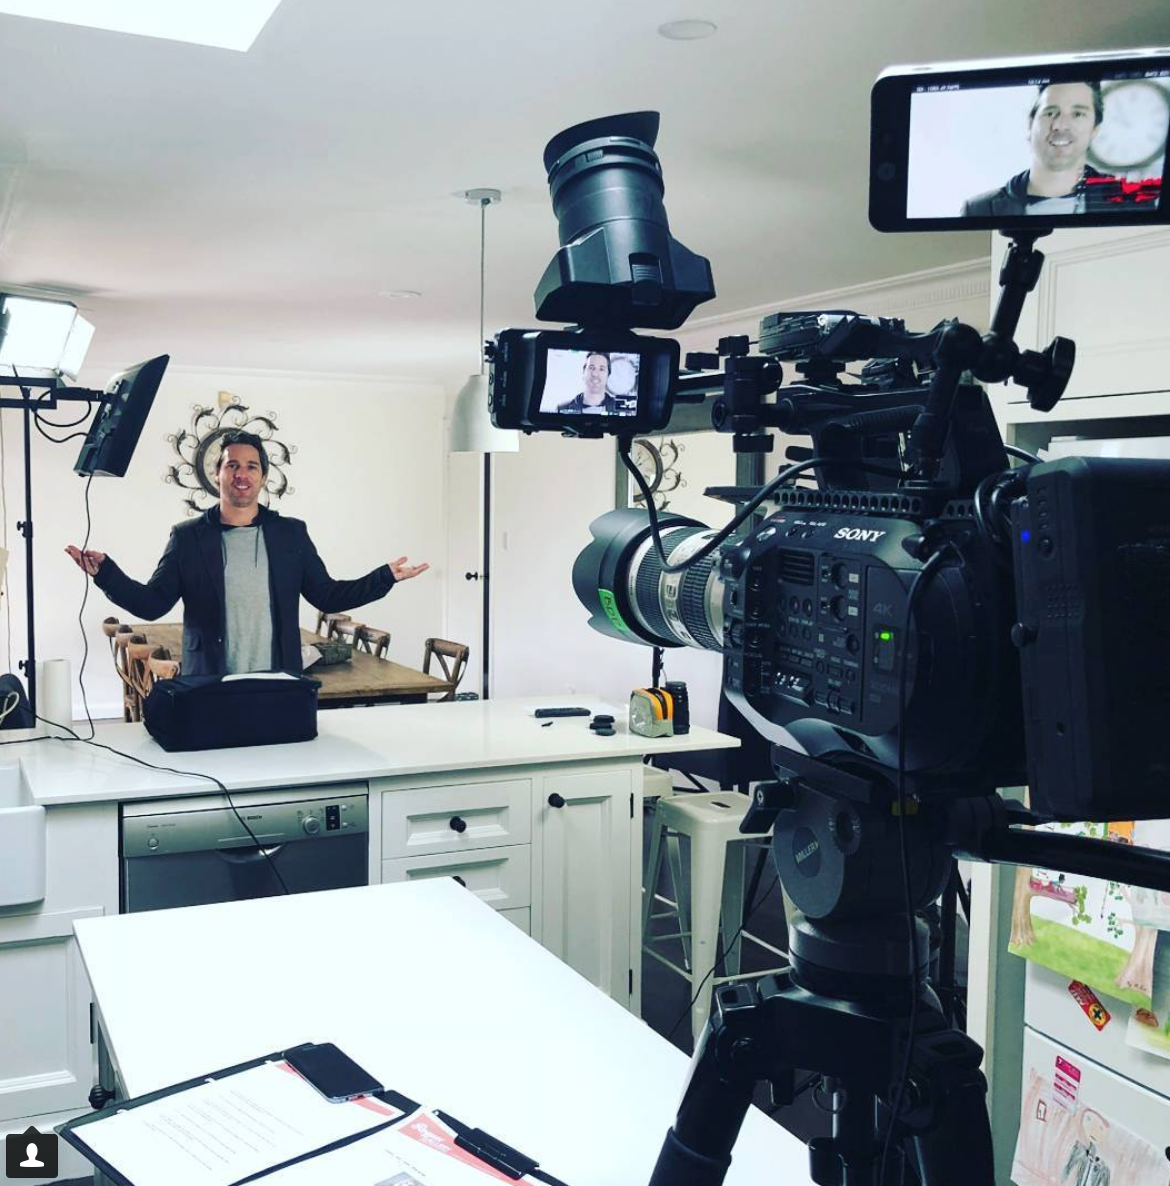 Roghan McKerlie - Rogues Gallery - On set and creating content